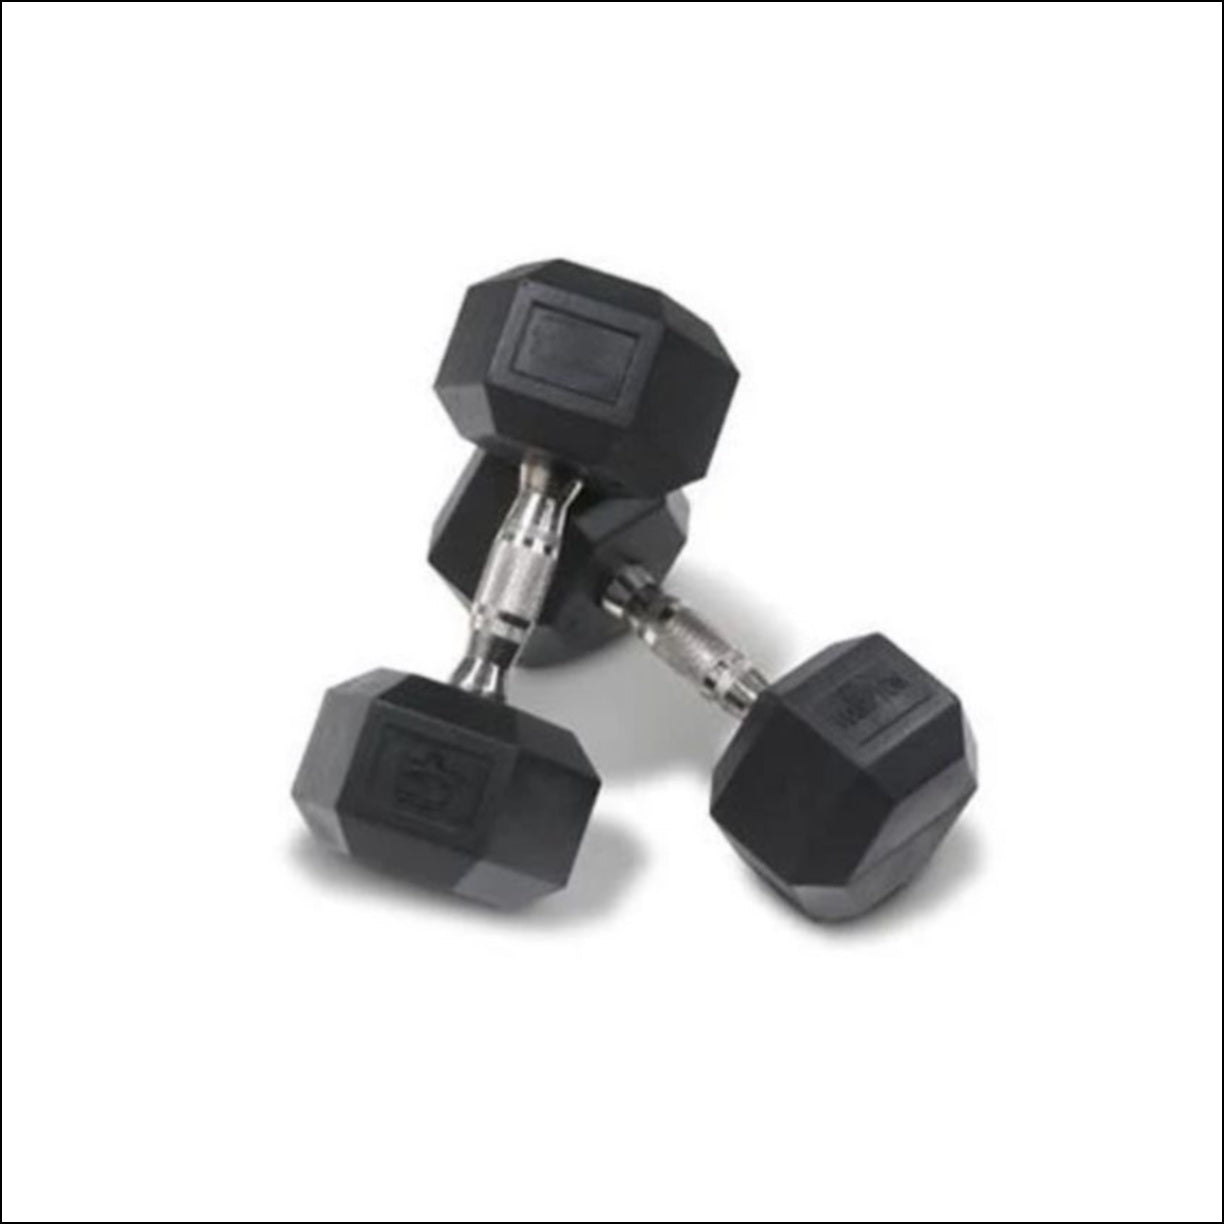 PAIR OF 47.5-KG RUBBER HEX DUMBBELLS  Muscle Motion Rubber coated hexagonal dumbbells with ergonomic handles are designed for increased comfort and improved durability. Rubber coating reduces noise improves life cycle of the product  (other finishes such as chrome and cast iron are subject to chipping and rust). Rubber coated dumbbells are also kinder on floor surfaces. The hexagonal shaped ends are designed to prevent the dumbbell from rolling on the floor or dumbbell rack.